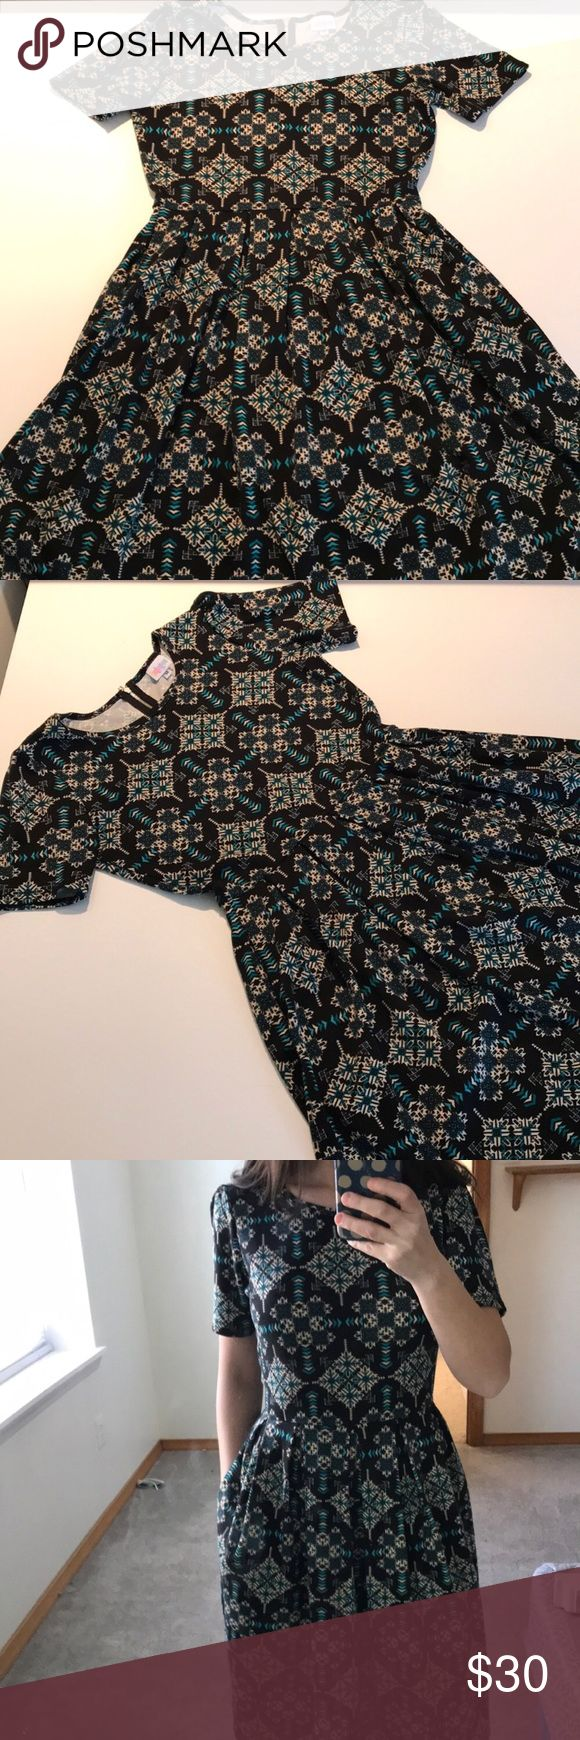 LulaRoe Amelia The Amelia Dress' stretchy knit fabric is comfortable enough to let you wear the dress all day, while having the structure and tailoring that make it sophisticated enough for the office or a fancy night out. Looks great on all body types. Black background with turquoise and off white Aztec pattern pairs great with a denim or leather jacket! This is a pre-owned, pre-worn dress, so there are normal signs of wash and wear, (ie: some fading and some piling). Price reflects…